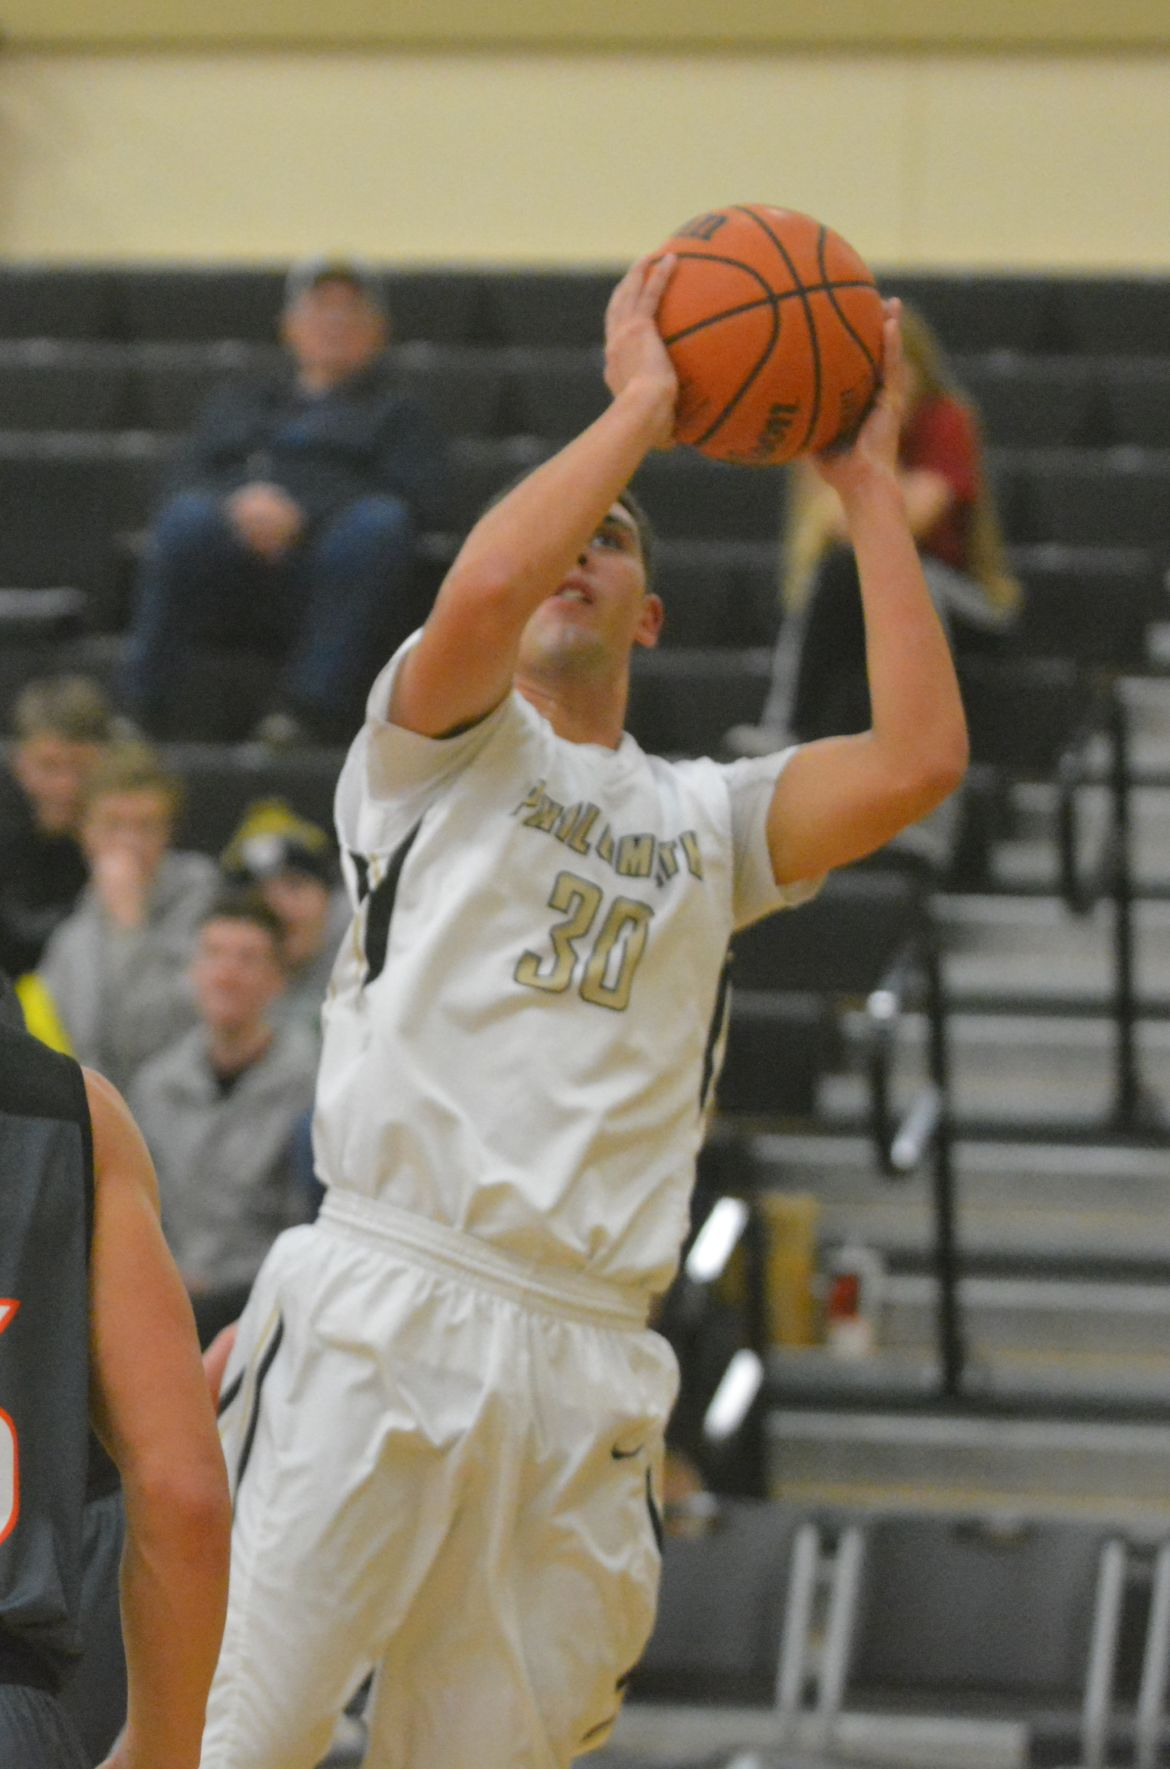 PHS boys basketball: Tyler Pfarrer